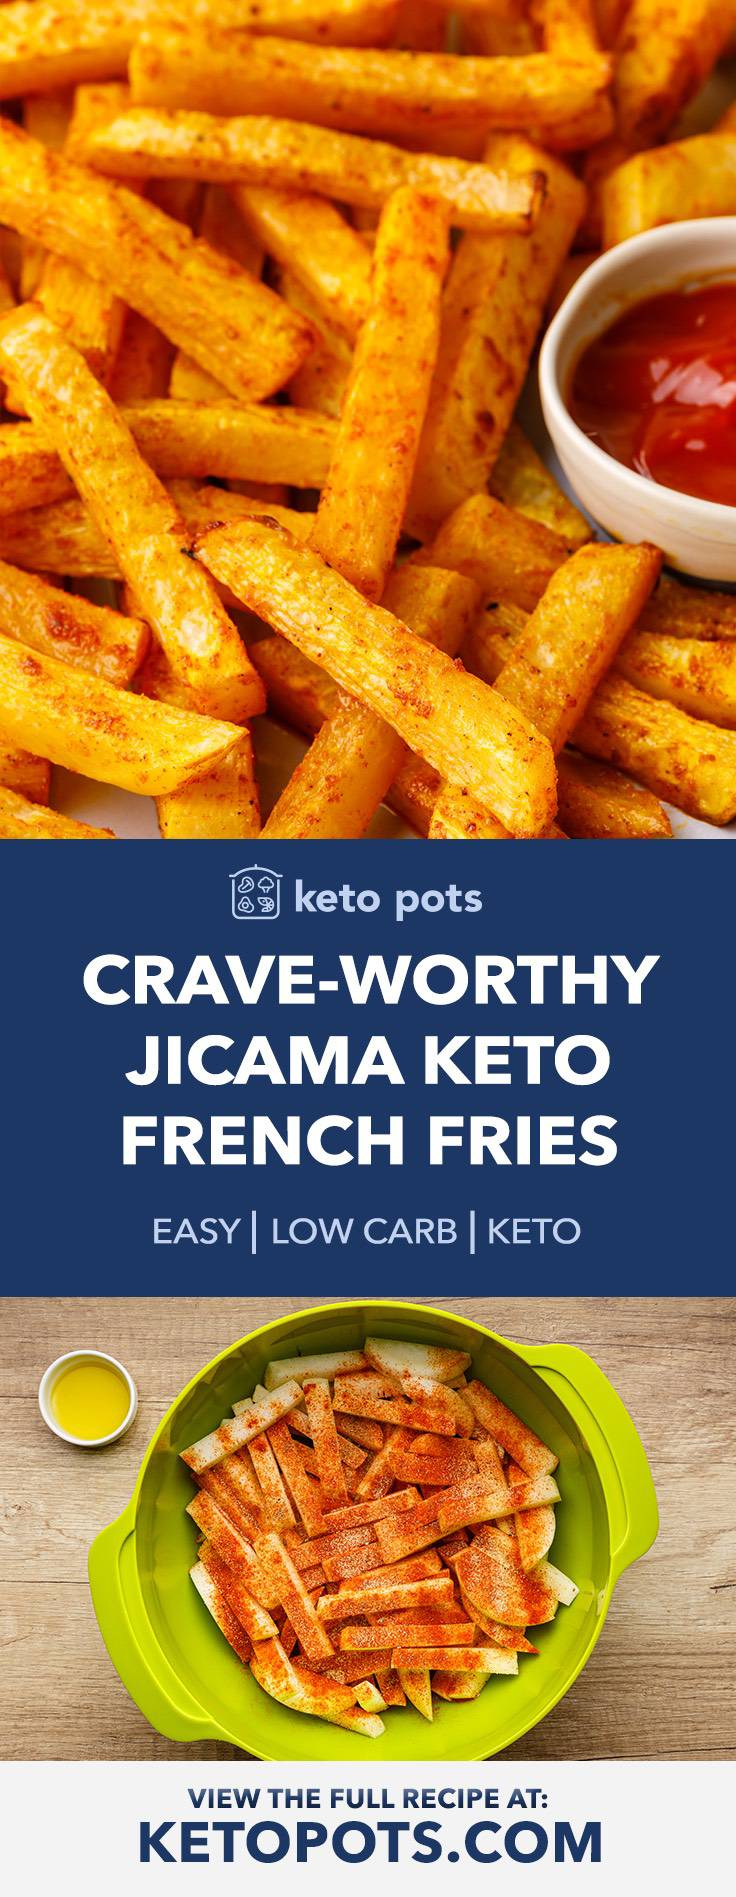 Crispy, Crunchy Jicama French Fries